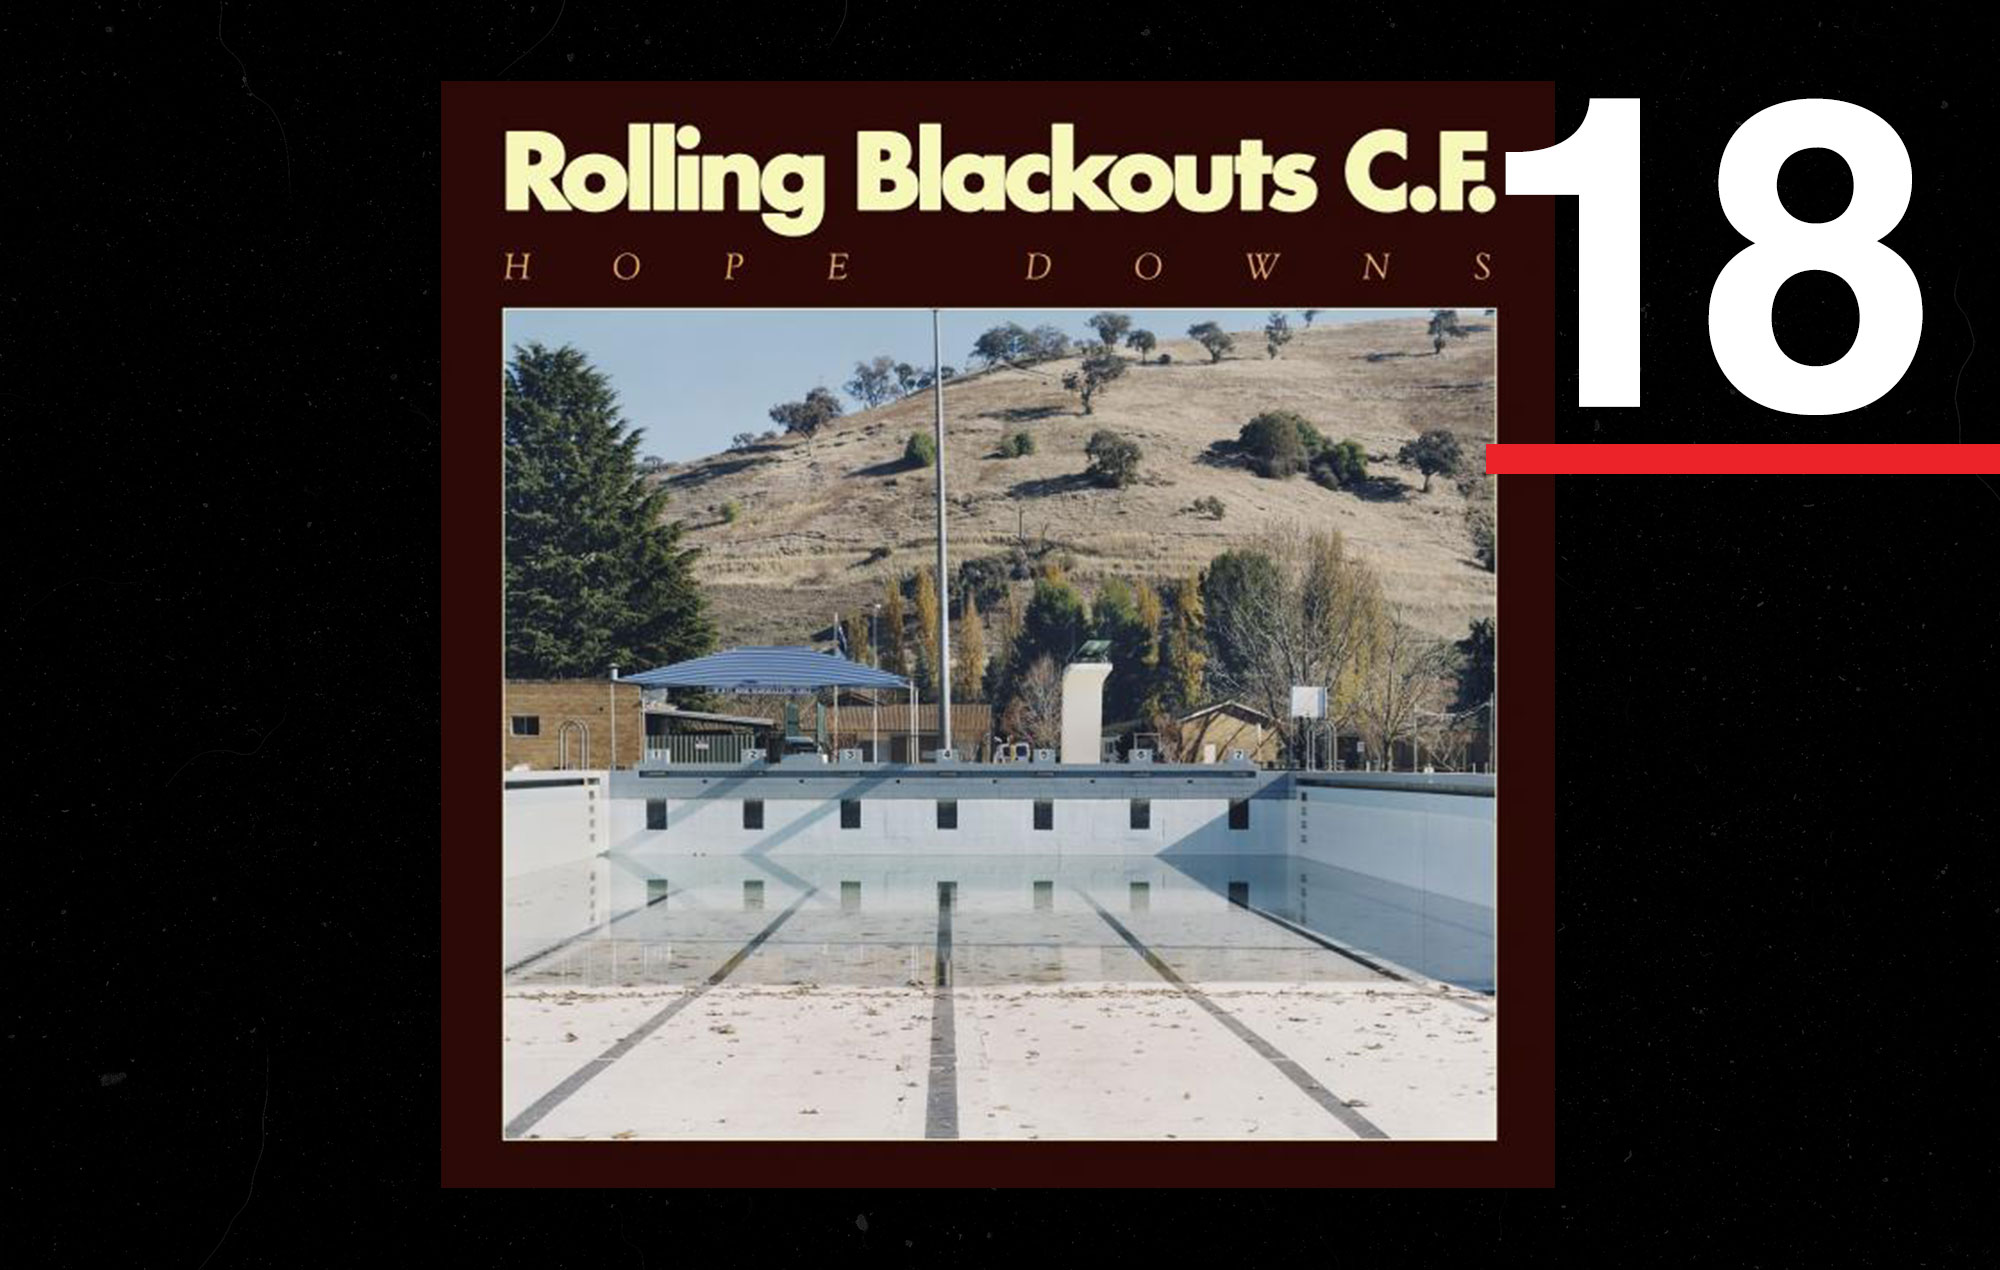 95b136cd2c7 The War On Drugs finally reached Australia… or so it sounded from Rolling  Blackouts Coastal fever s debut album. Touting a catchier